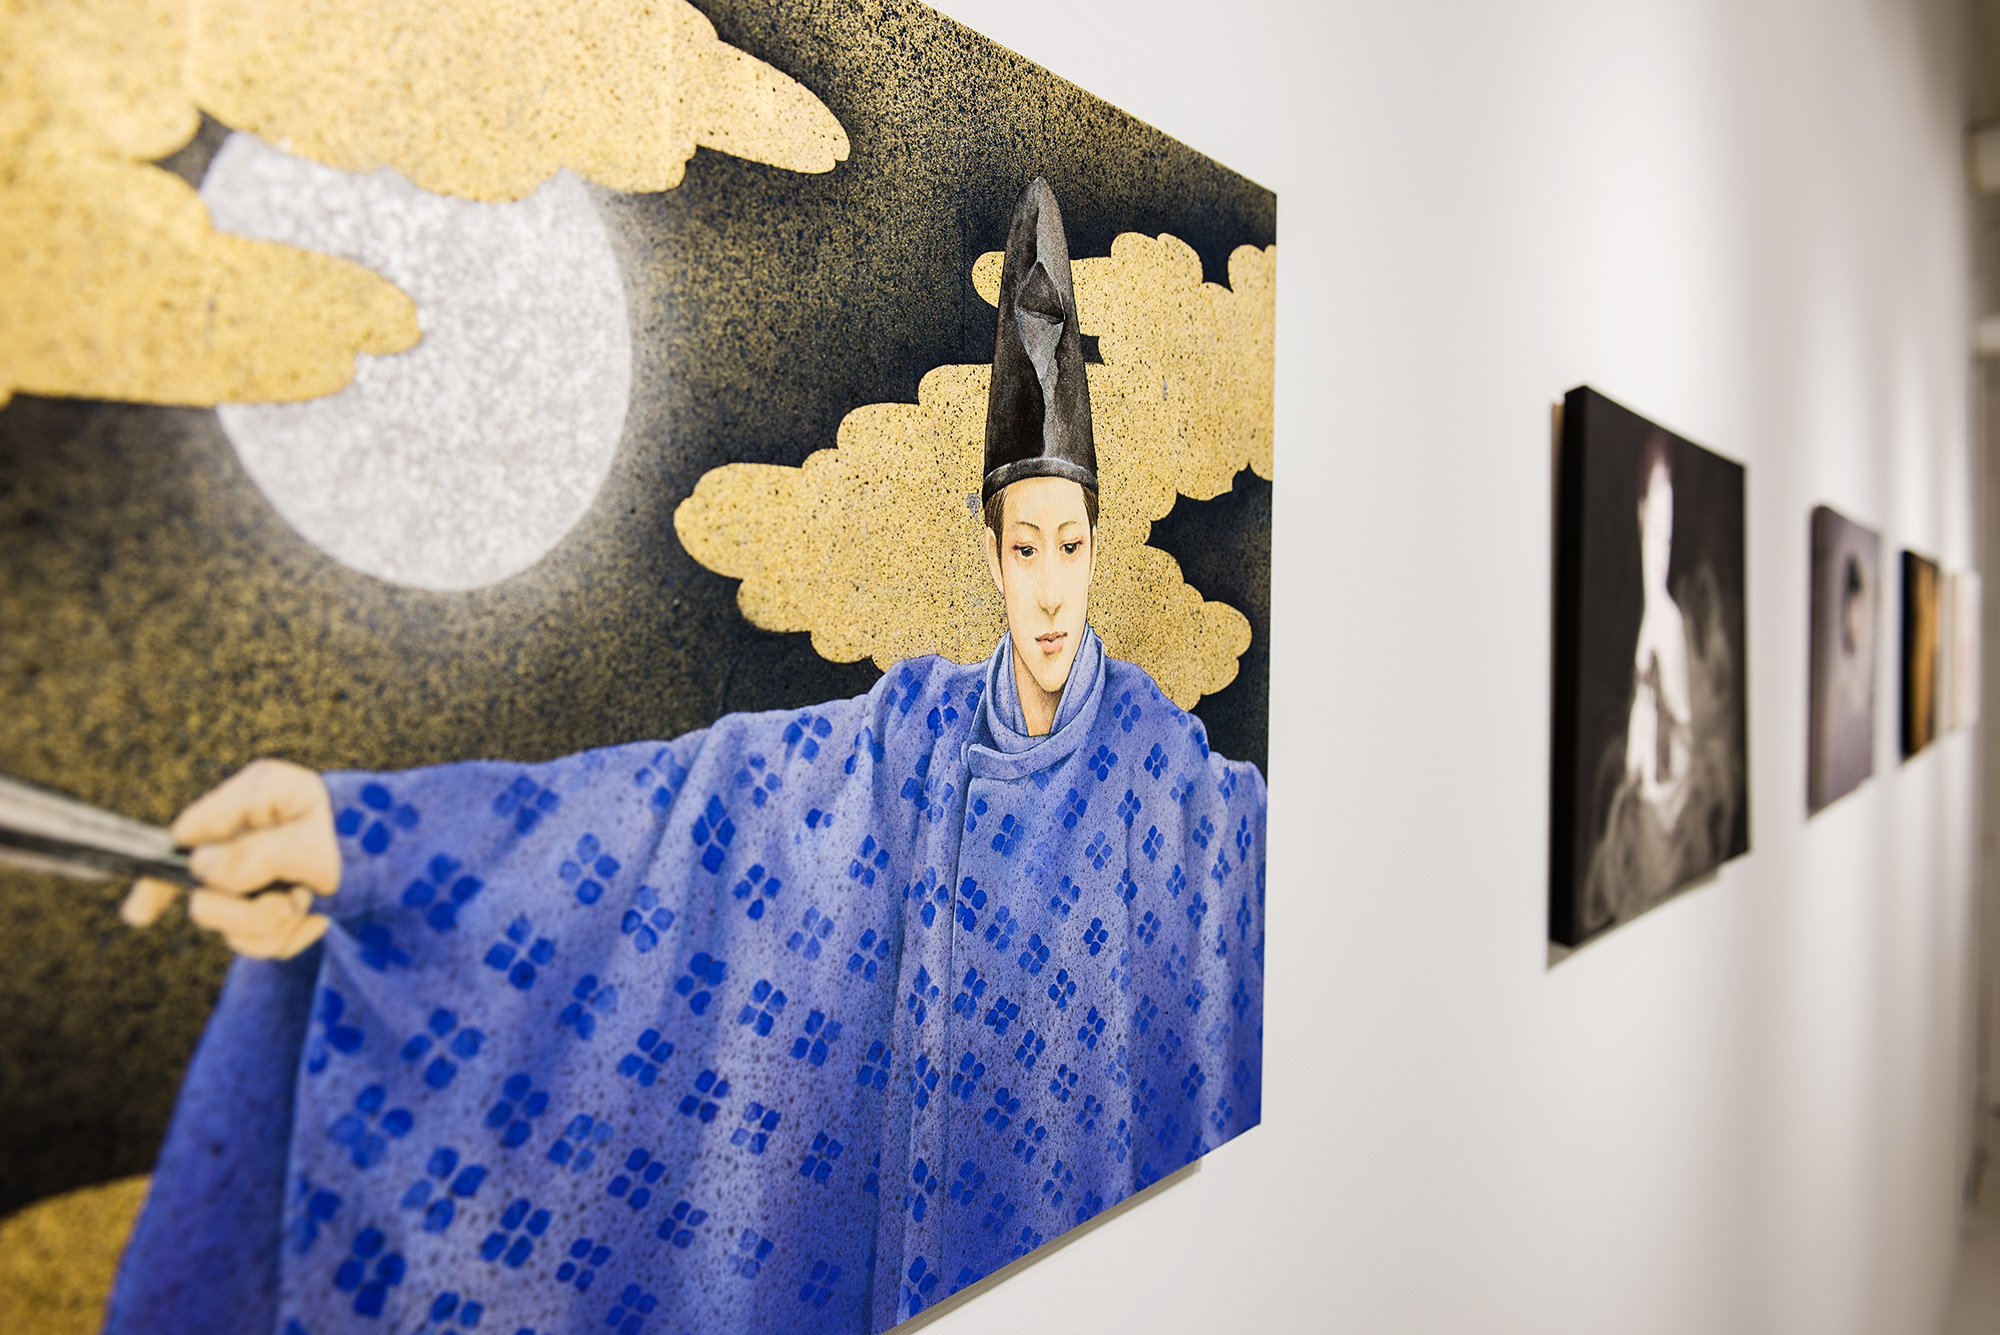 Reimagined: Contemporary Artists Take on The Tale of Genji